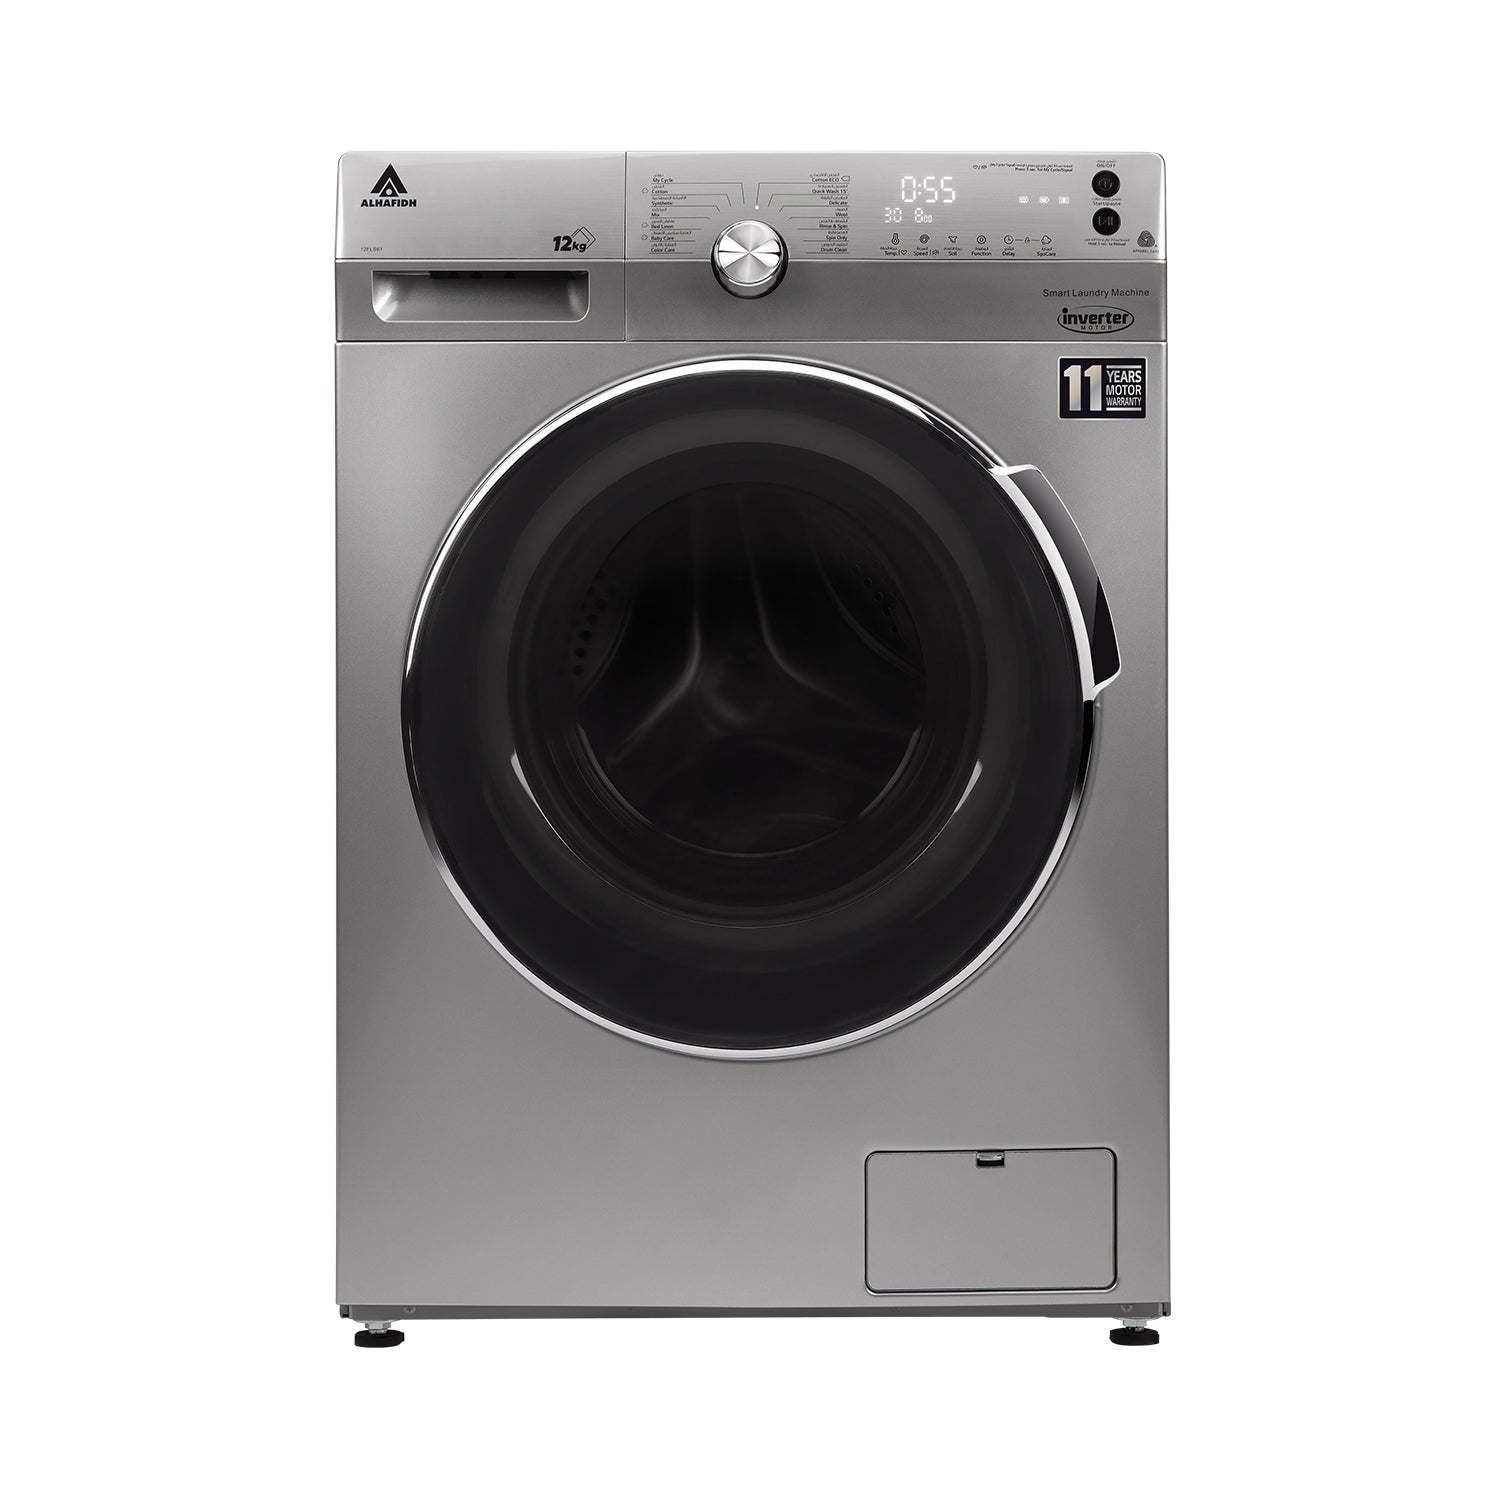 ALHAFIDH12KG Front Loading Washing Machine 12FLS61